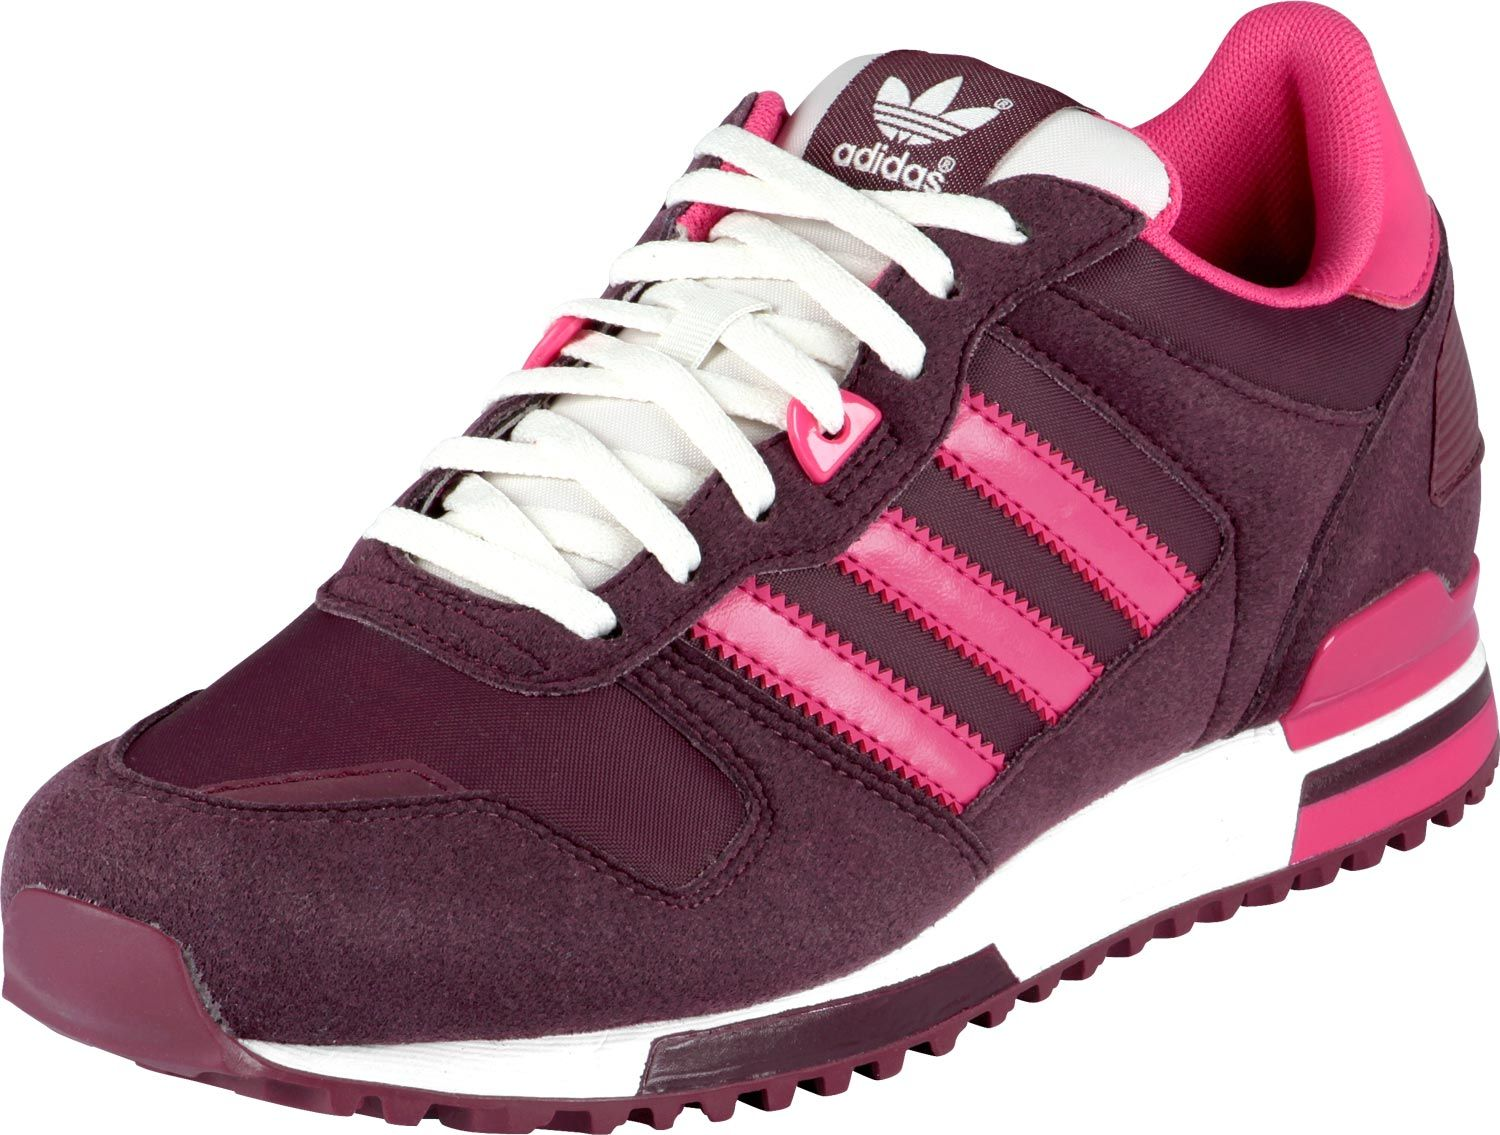 Adidas ZX 700 W shoes purple pink | Adidas zx 700, Sneakers ...